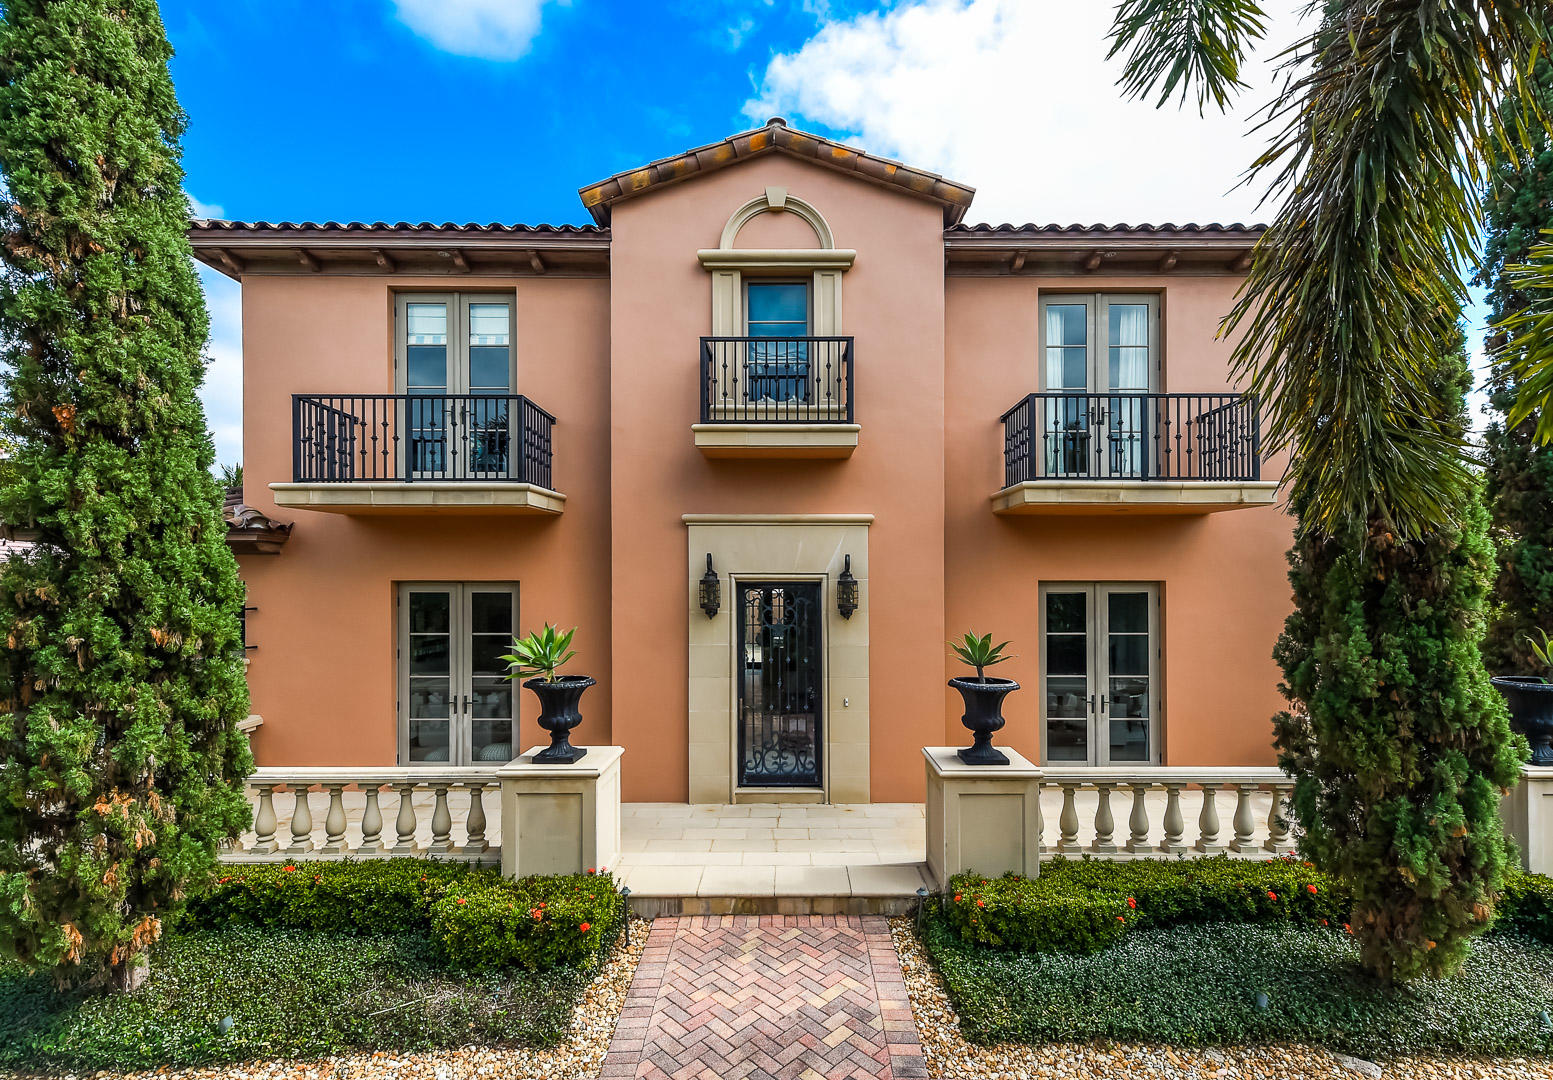 579 Woods Road, Palm Beach, Florida 33480, 4 Bedrooms Bedrooms, ,4.1 BathroomsBathrooms,Single Family,For Sale,Woods,RX-10498539